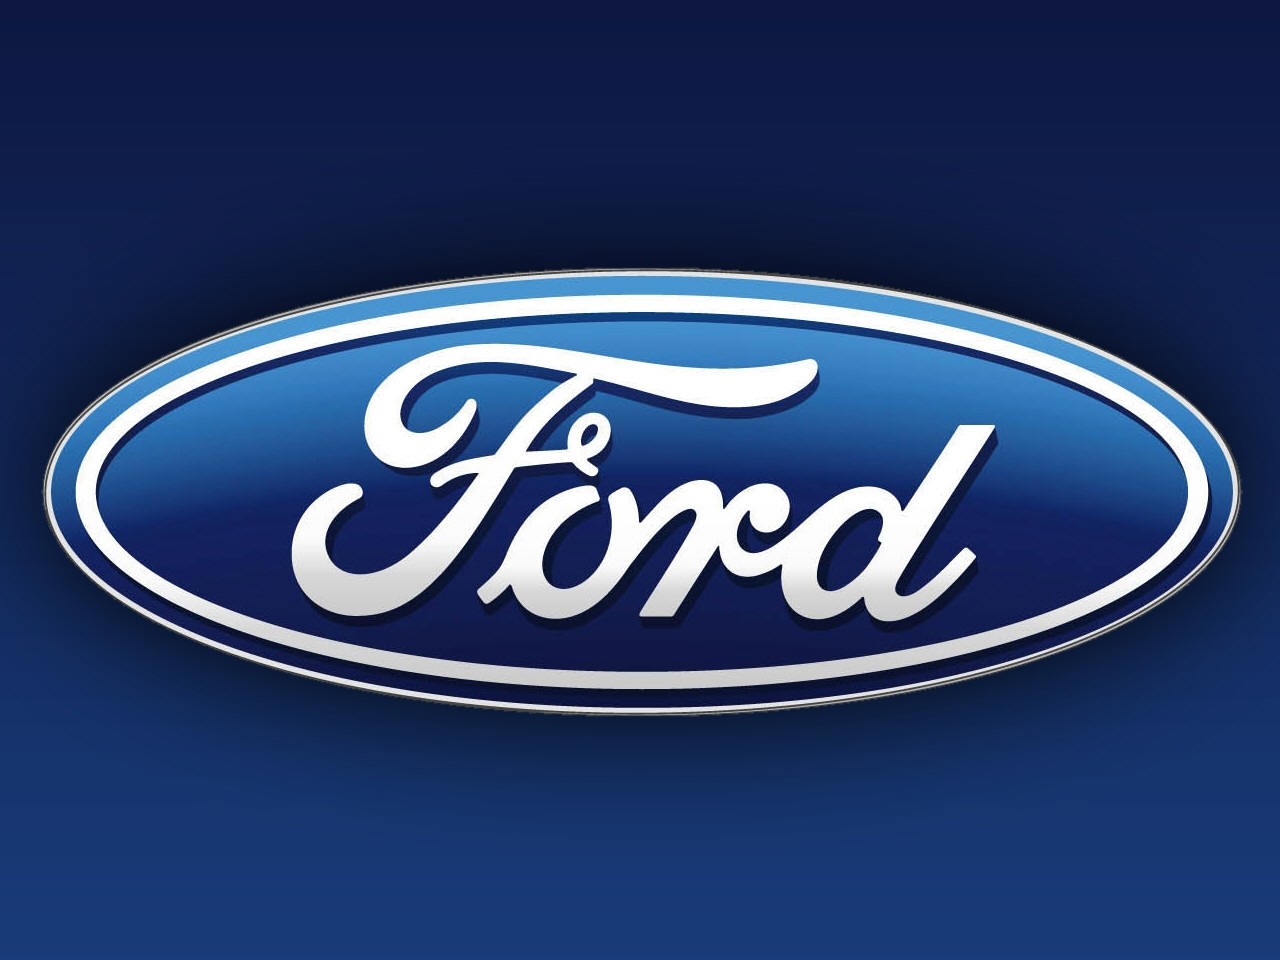 ford logo on the blue theme background